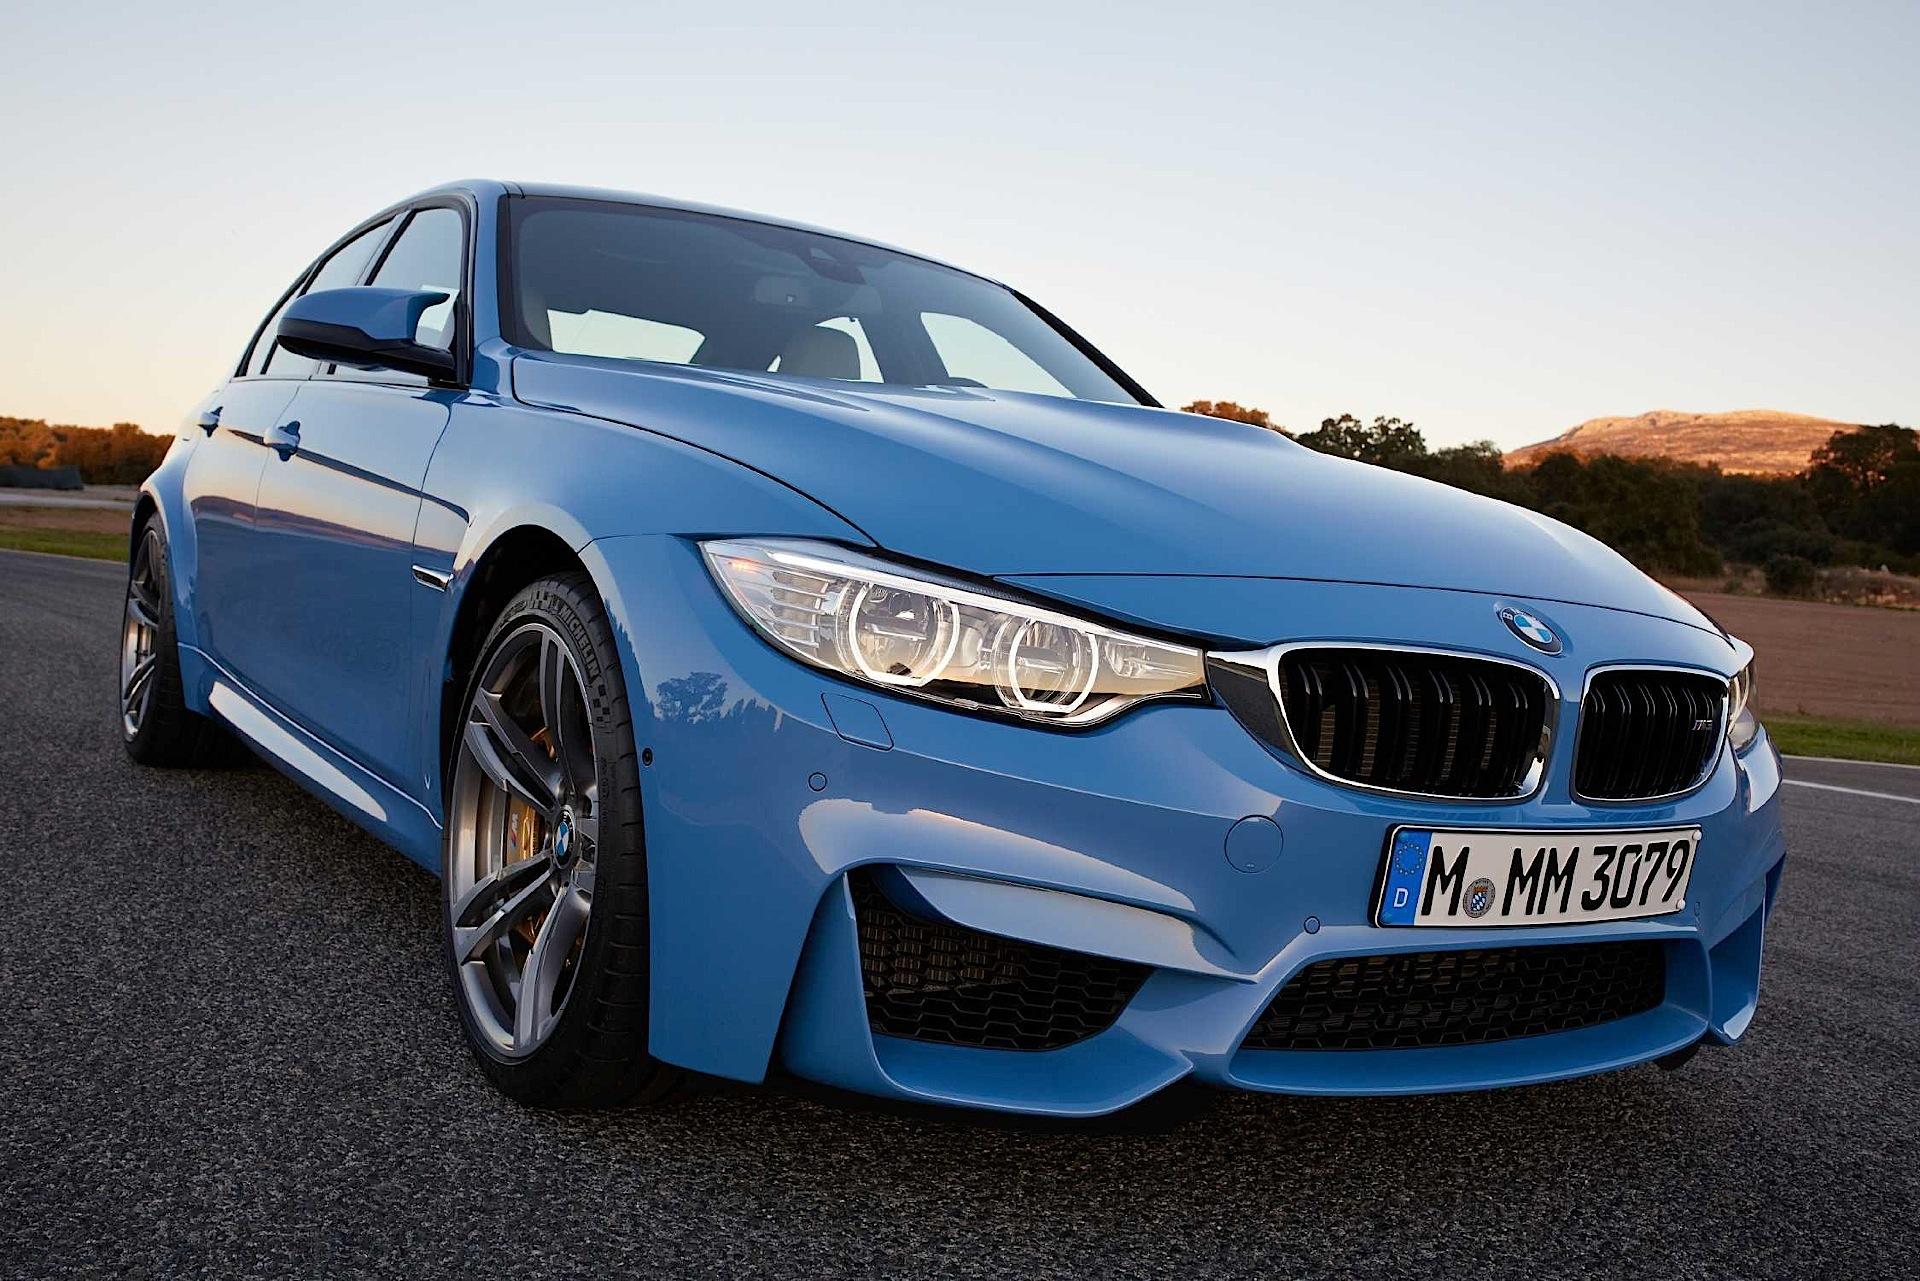 india images com mileage specs list price newcars bmw in autoportal